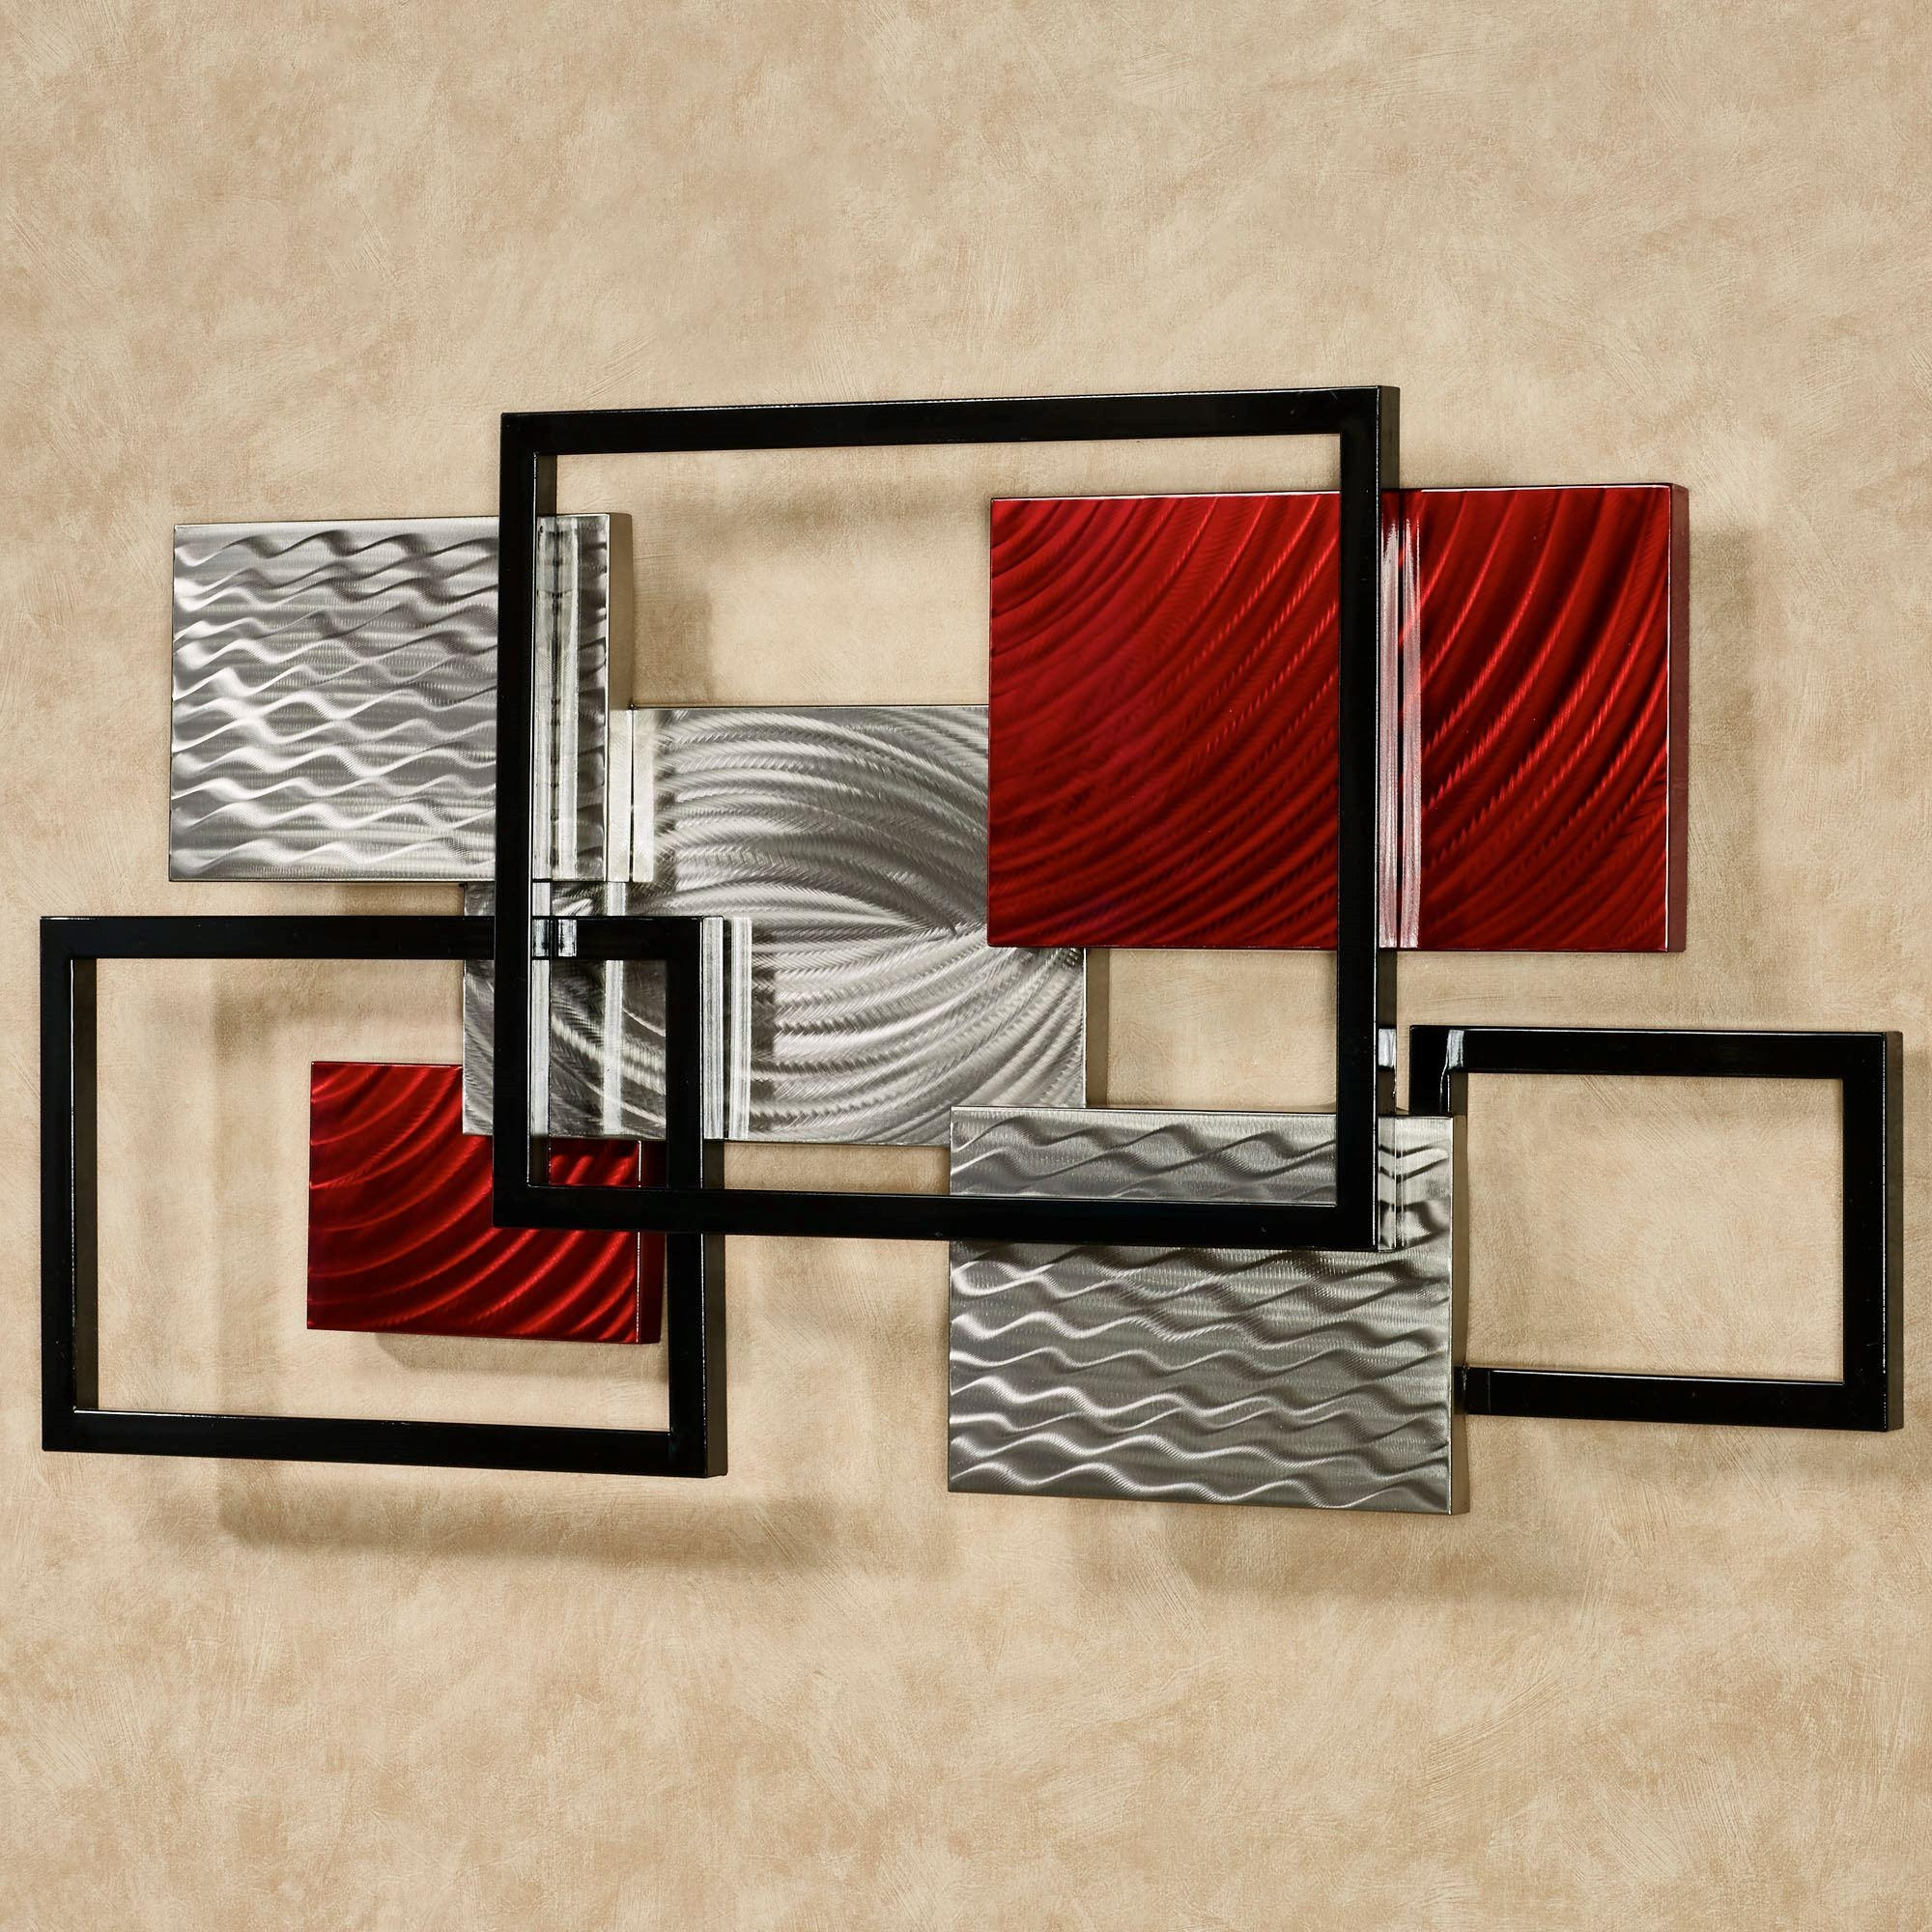 Framed Array Indoor Outdoor Abstract Metal Wall Sculpture Intended For Contemporary Metal Wall Art Sculpture (Image 5 of 20)